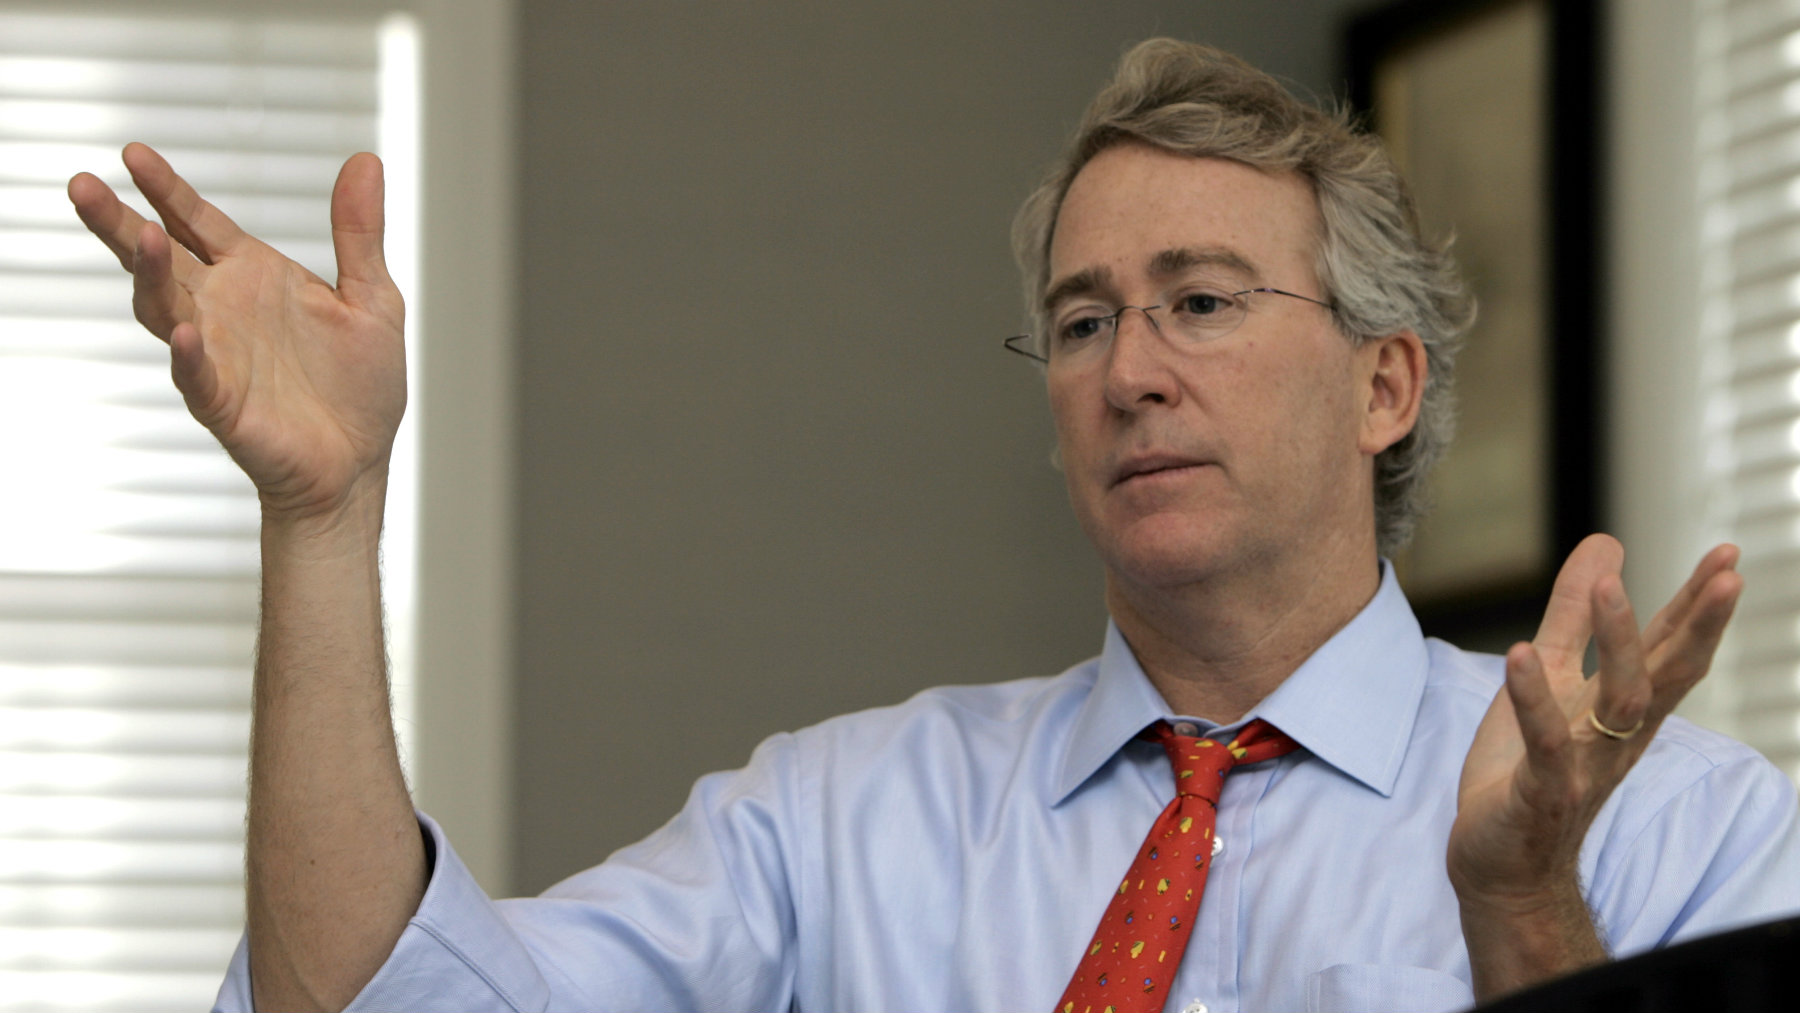 *FILE** Aubrey McClendon, co-founder of Chesapeake Energy Corp., is pictured during an interview in Oklahoma City, in this Nov. 8, 2005 file photo. Associated Press reporters and editors have surveyed proxy statements for most of the S&P 500 companies to provide a full picture of executives' compensation - including stock options, bonuses and perks such as country club memberships. (AP Photo, file)